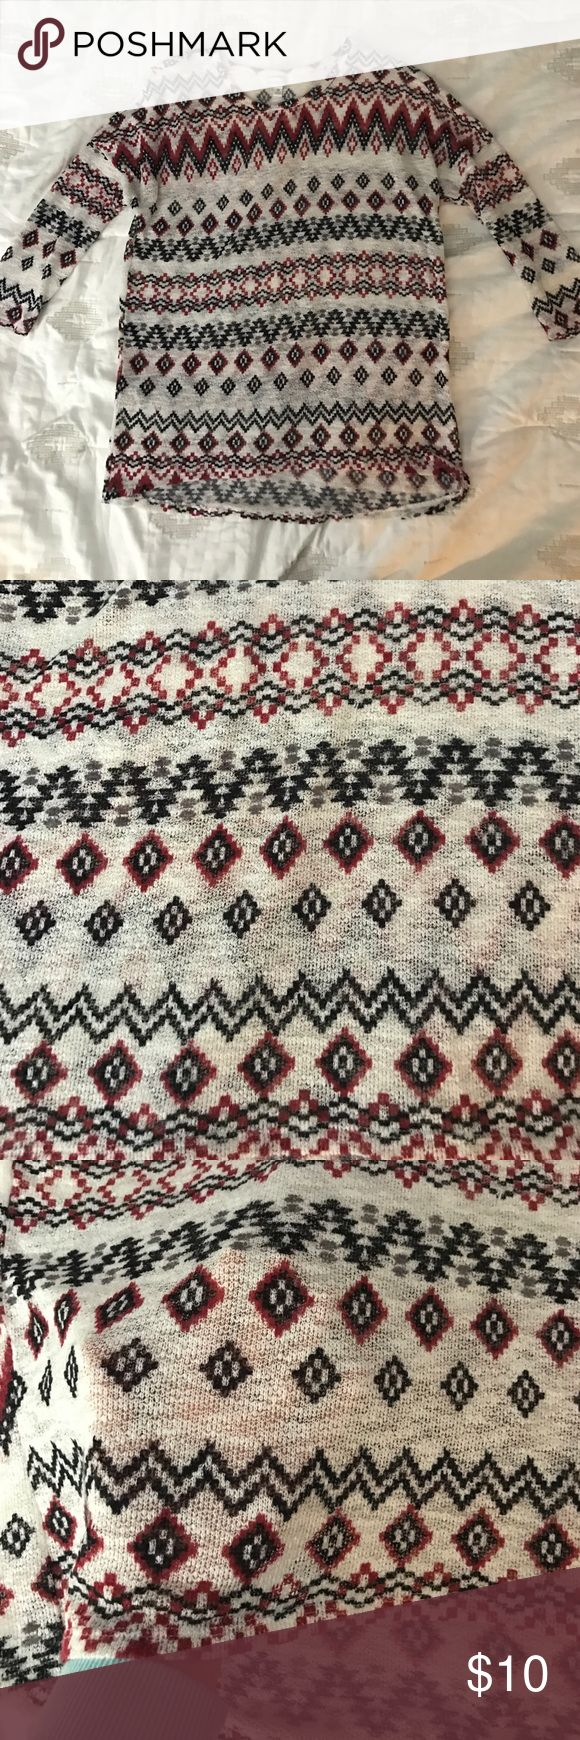 Aztec shirt Thin and airy material. fun Aztec pattern. A little bit longer in the back Charming Charlie Tops Tees - Long Sleeve